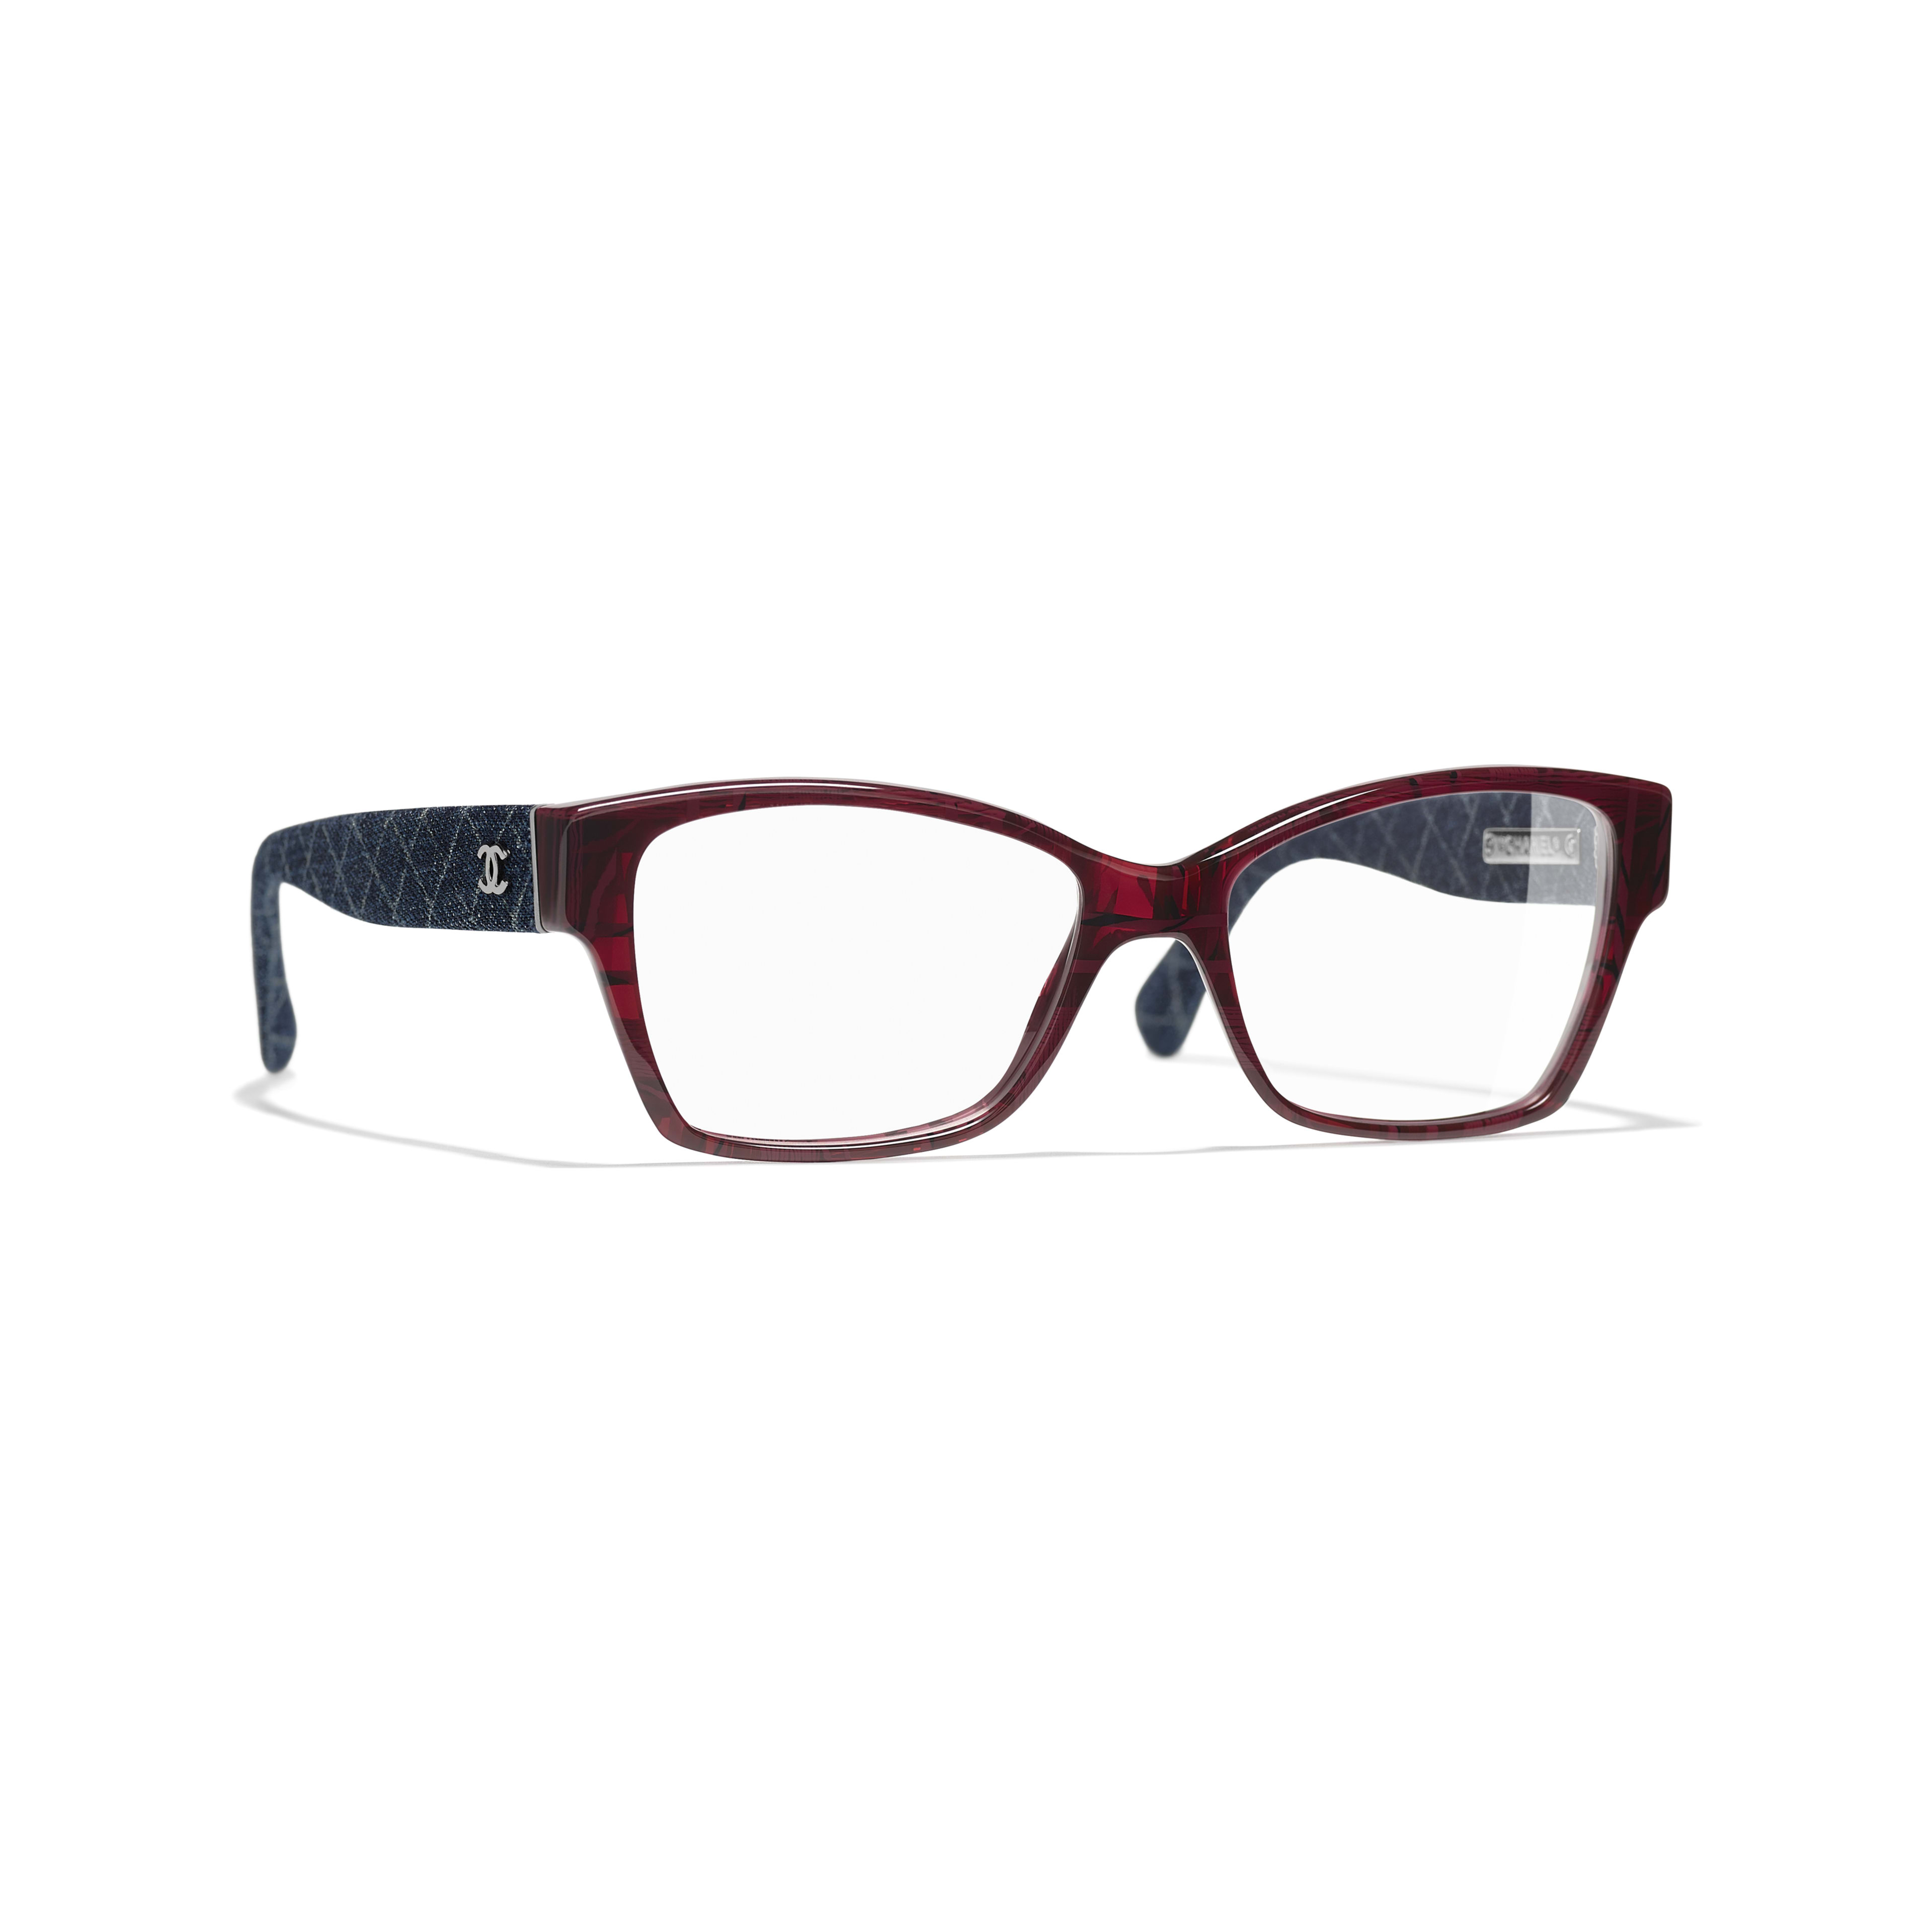 Rectangle Eyeglasses - Red & Dark Blue - Acetate & Denim - Default view - see full sized version